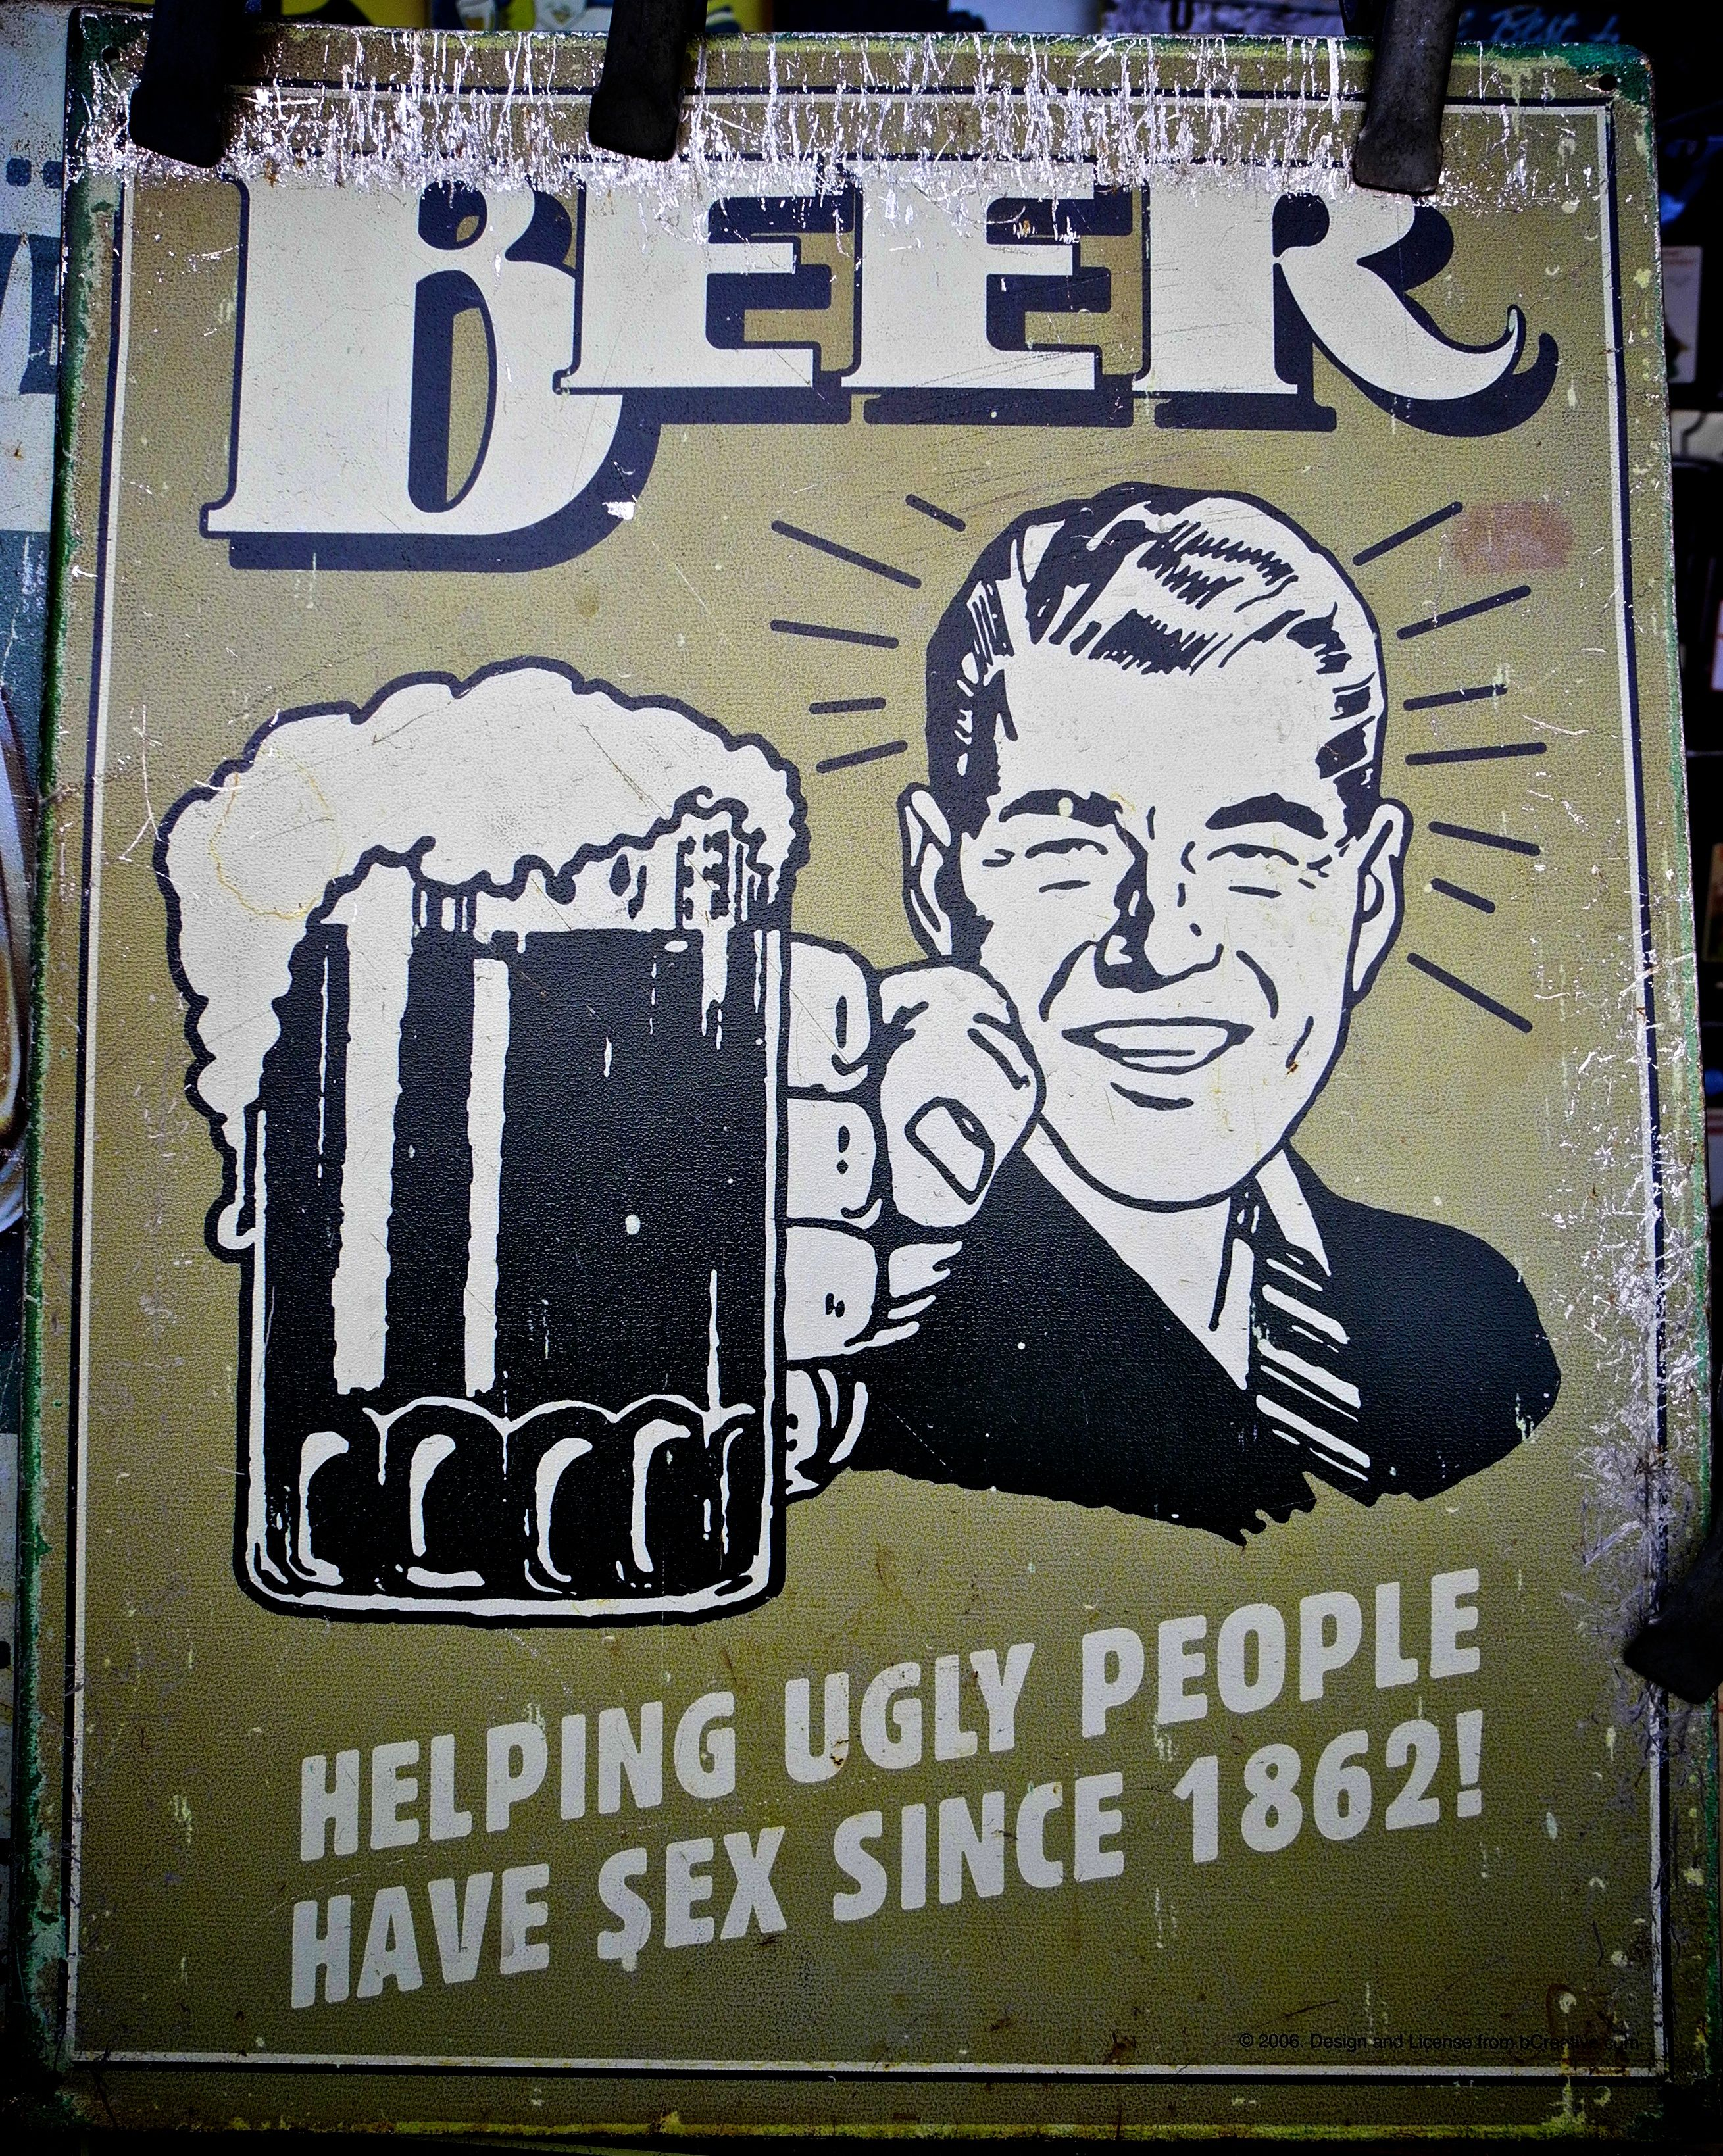 Beer! Helping Ugly People Have Sex   Dibujos   Pinterest: http://pinterest.com/pin/35888128251512708/